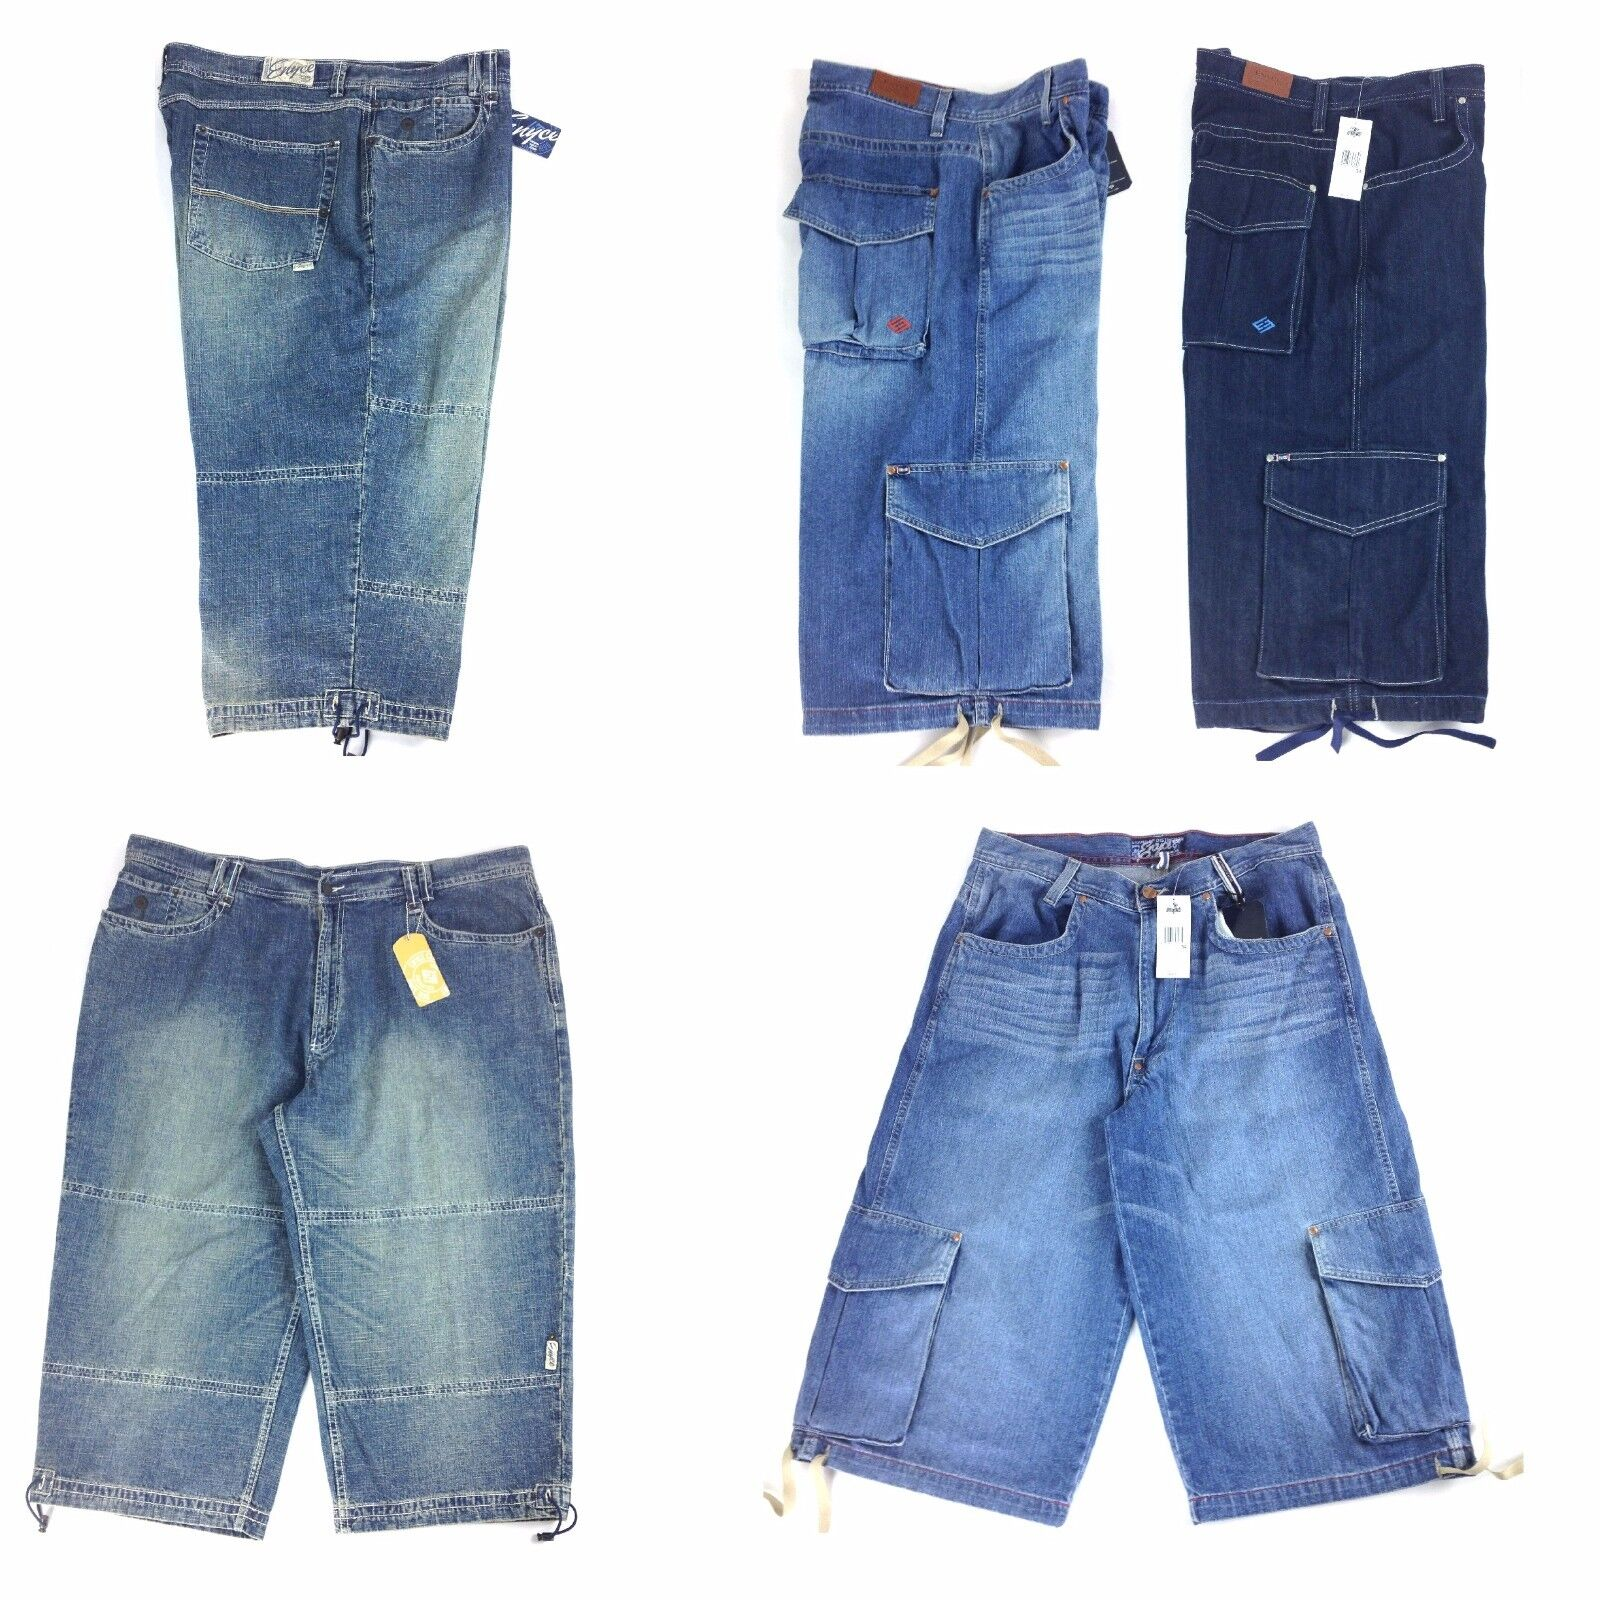 ENYCE, DENIM MEN'S LONG SHORT, GROUP-5, LIMITED COLOR & SIZES,